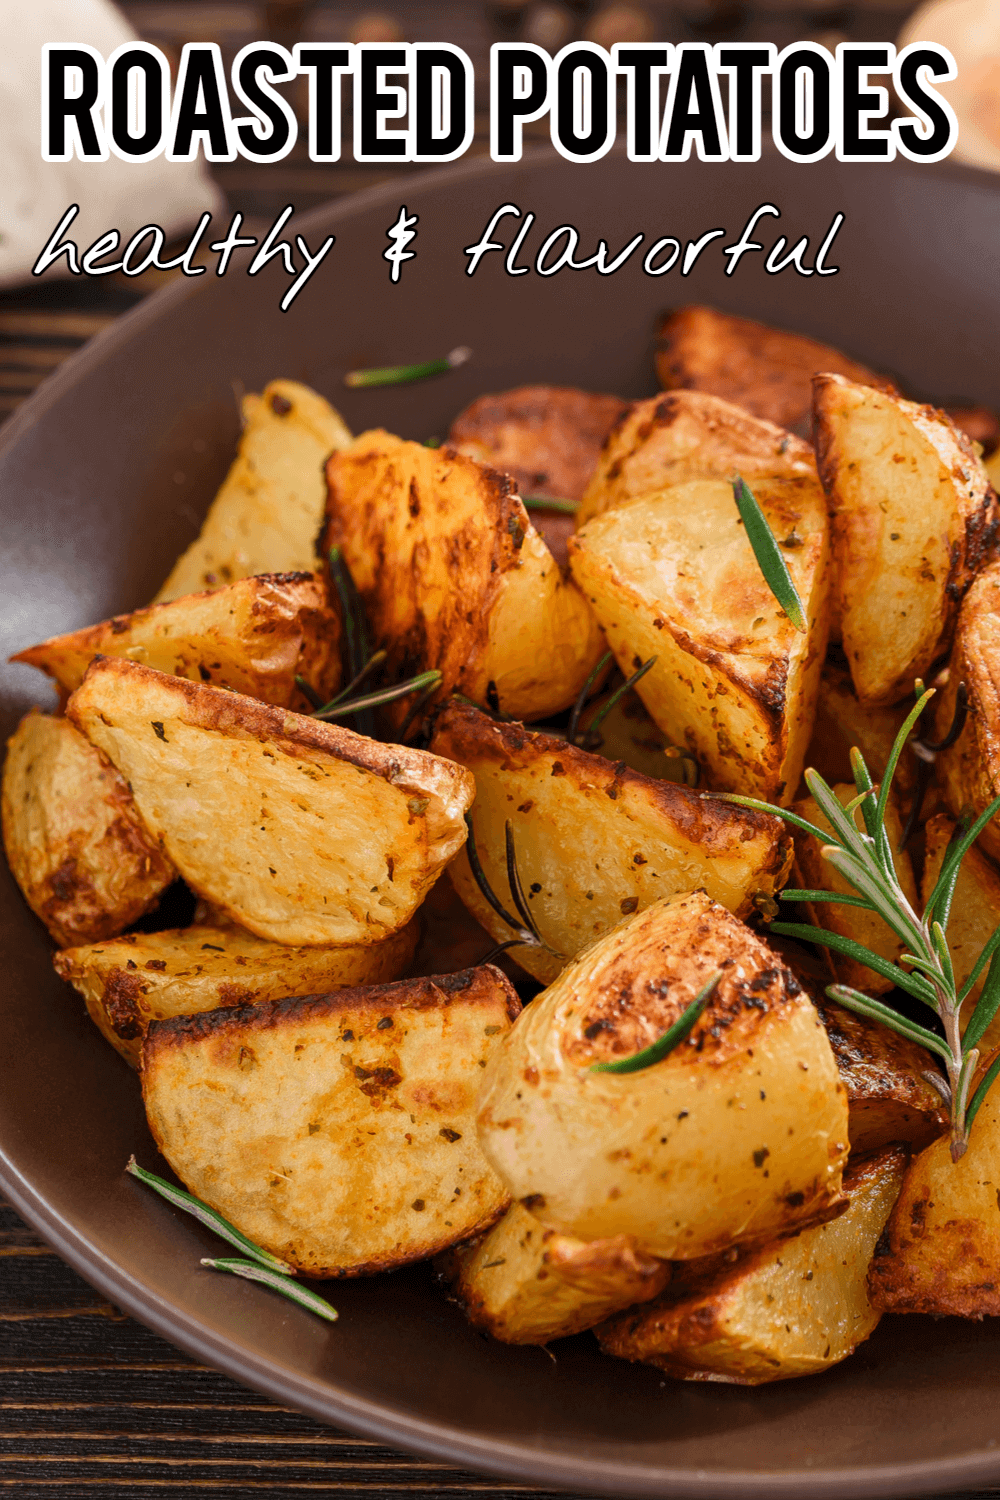 A Bit Healthier Roasted Potatoes Recipe In 2021 Potato Side Dishes Vegetable Side Dishes Easy Chicken Recipes